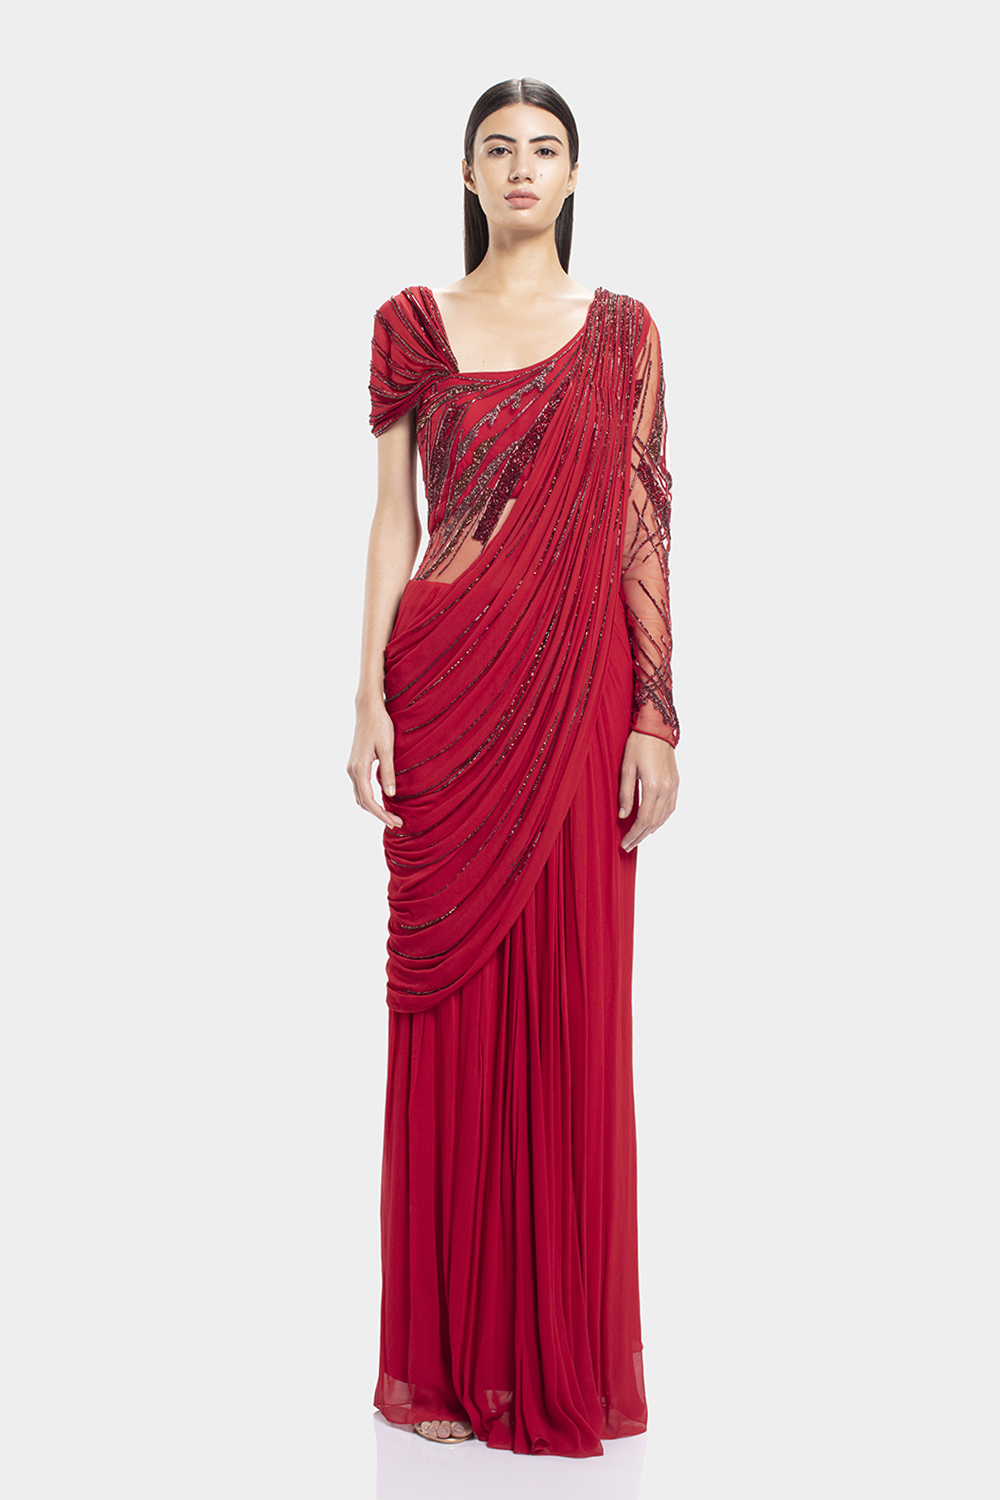 Lava Red Draped Iridescent Saree Gown Gaurav Gupta Studio